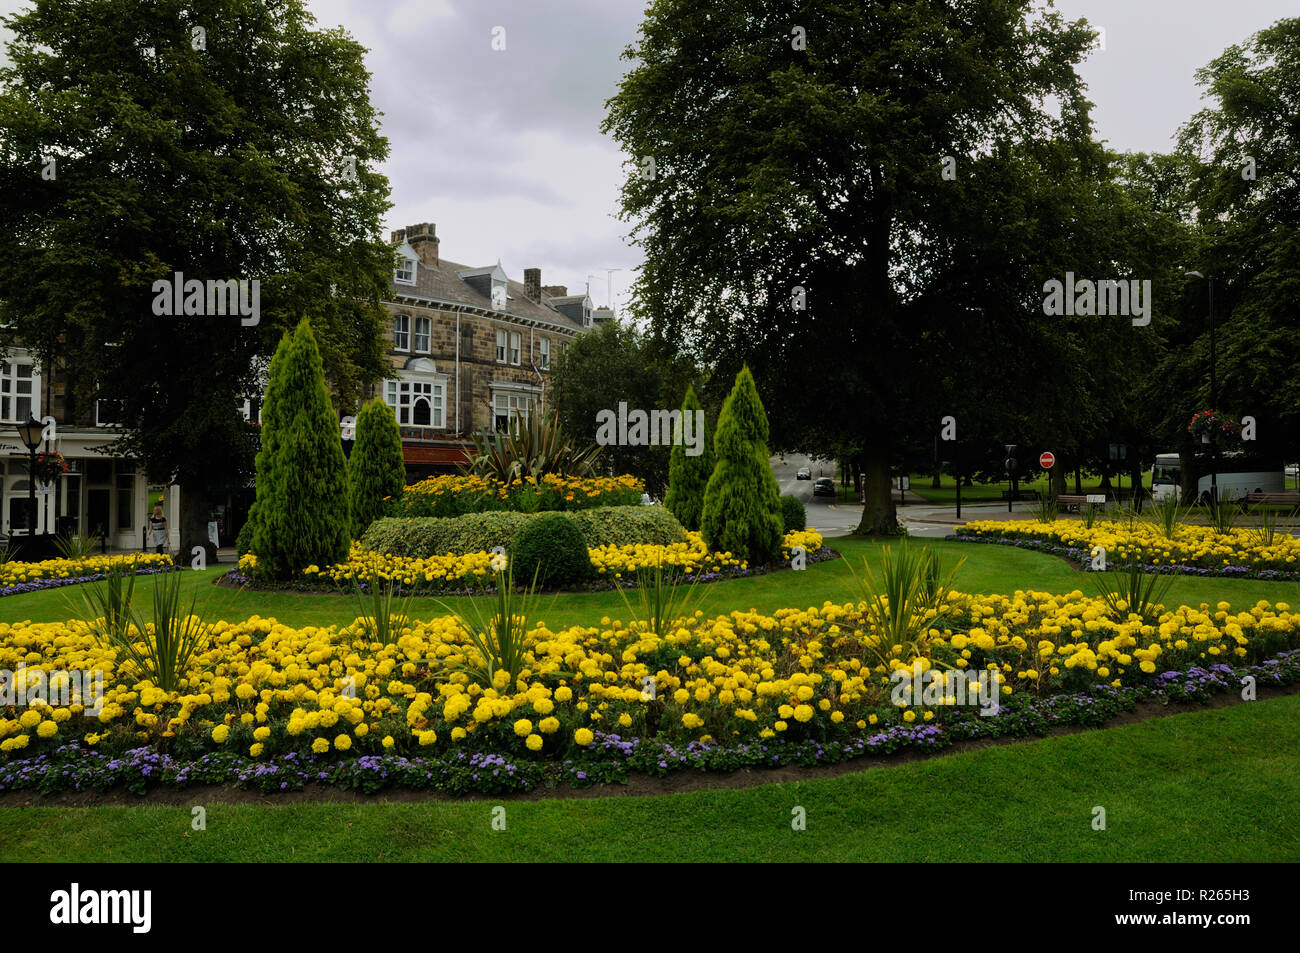 Floral display on a roundabout in the Montpellier Quarter, Harrogate, North Yorkshire, England Stock Photo